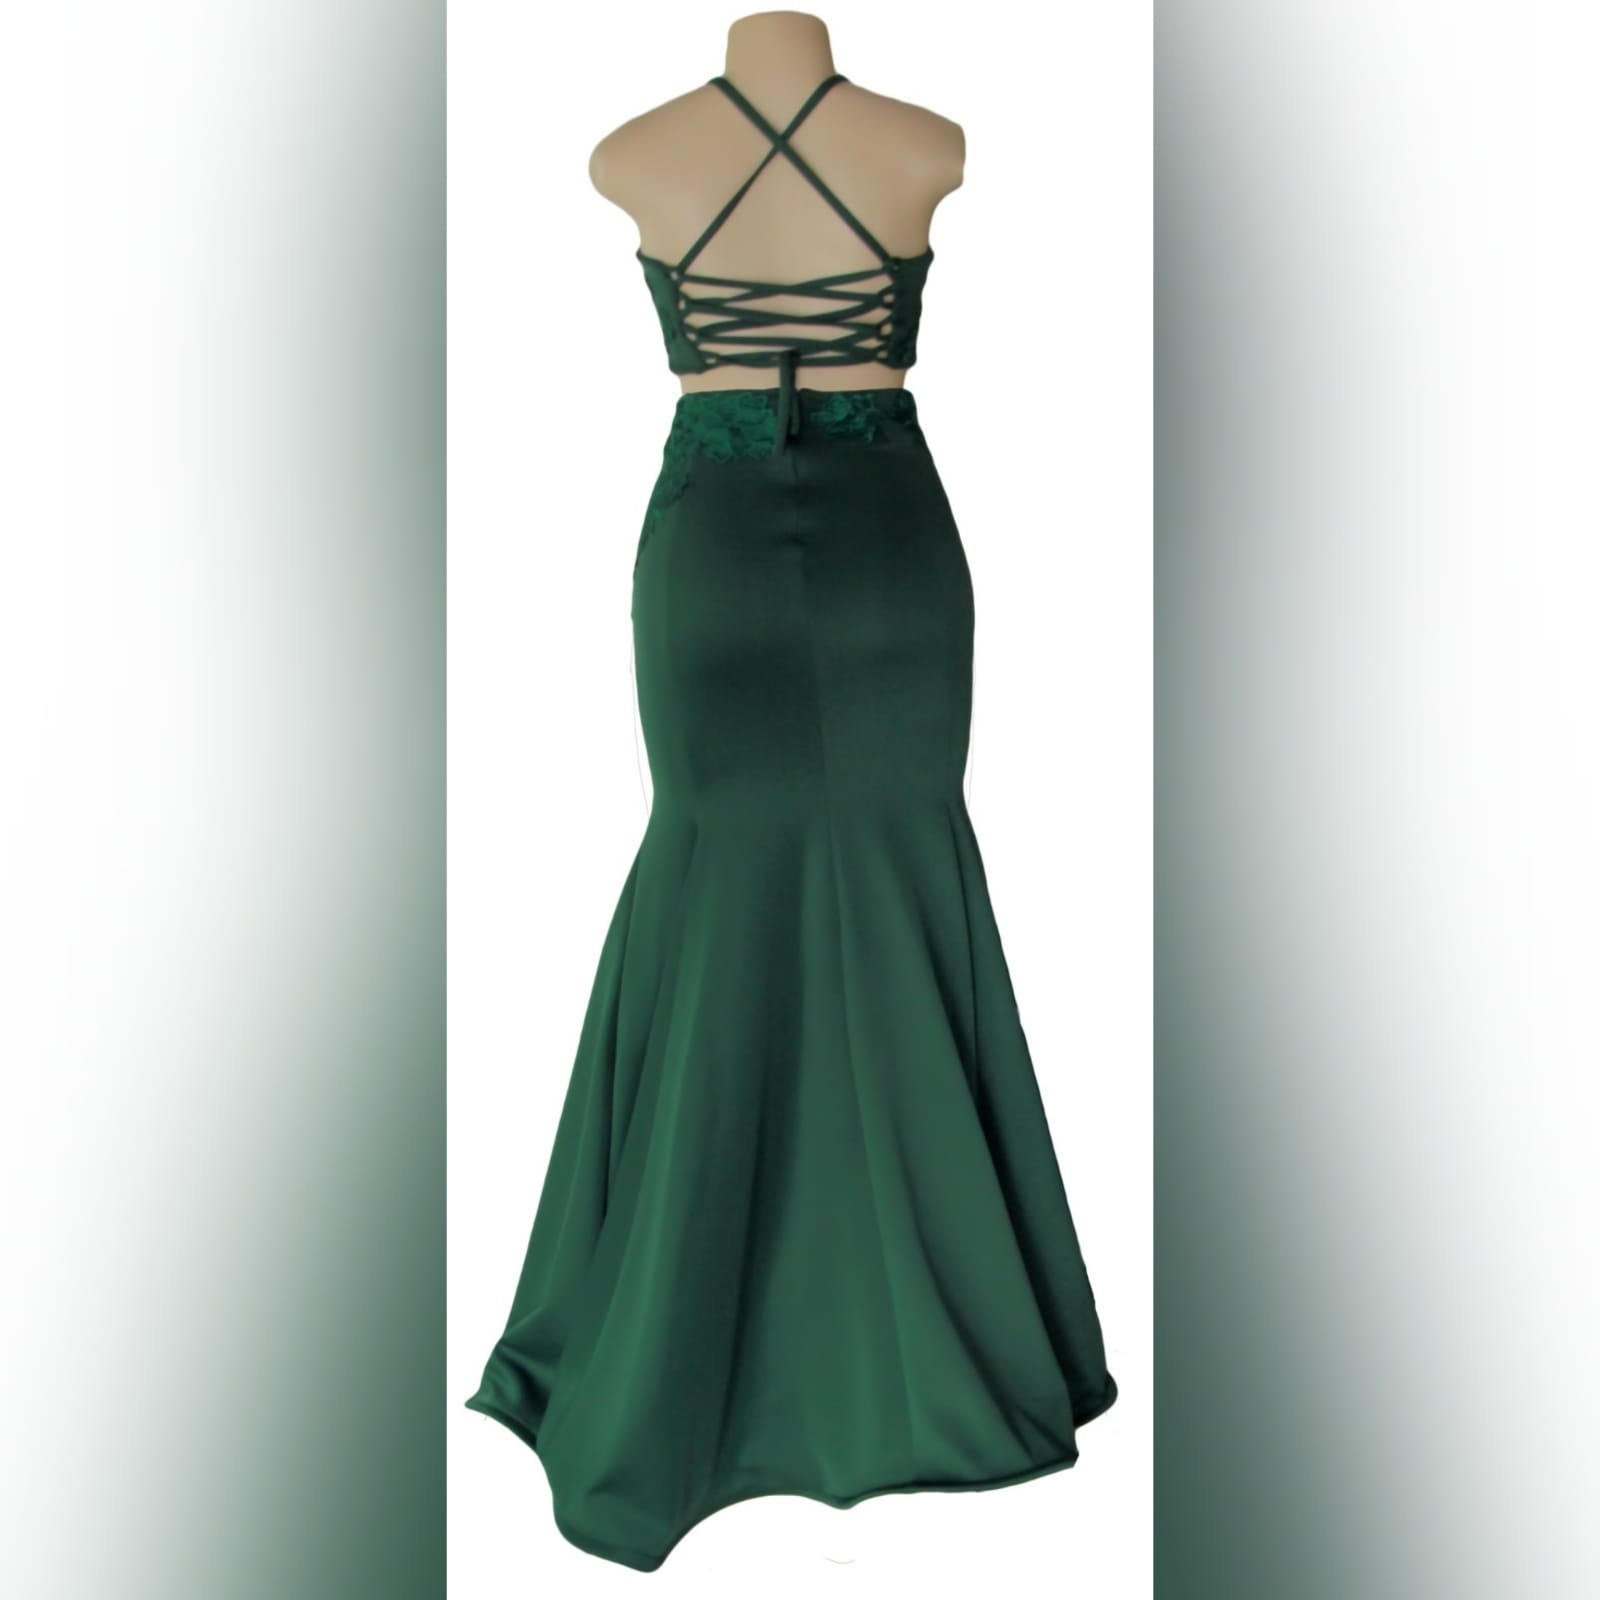 2 piece emerald green mermaid prom dress 4 2 piece emerald green mermaid prom dress. A gorgeous crop top with a lace-up open back, with a mermaid skirt. Lace detail on skirt and top for a classic touch.